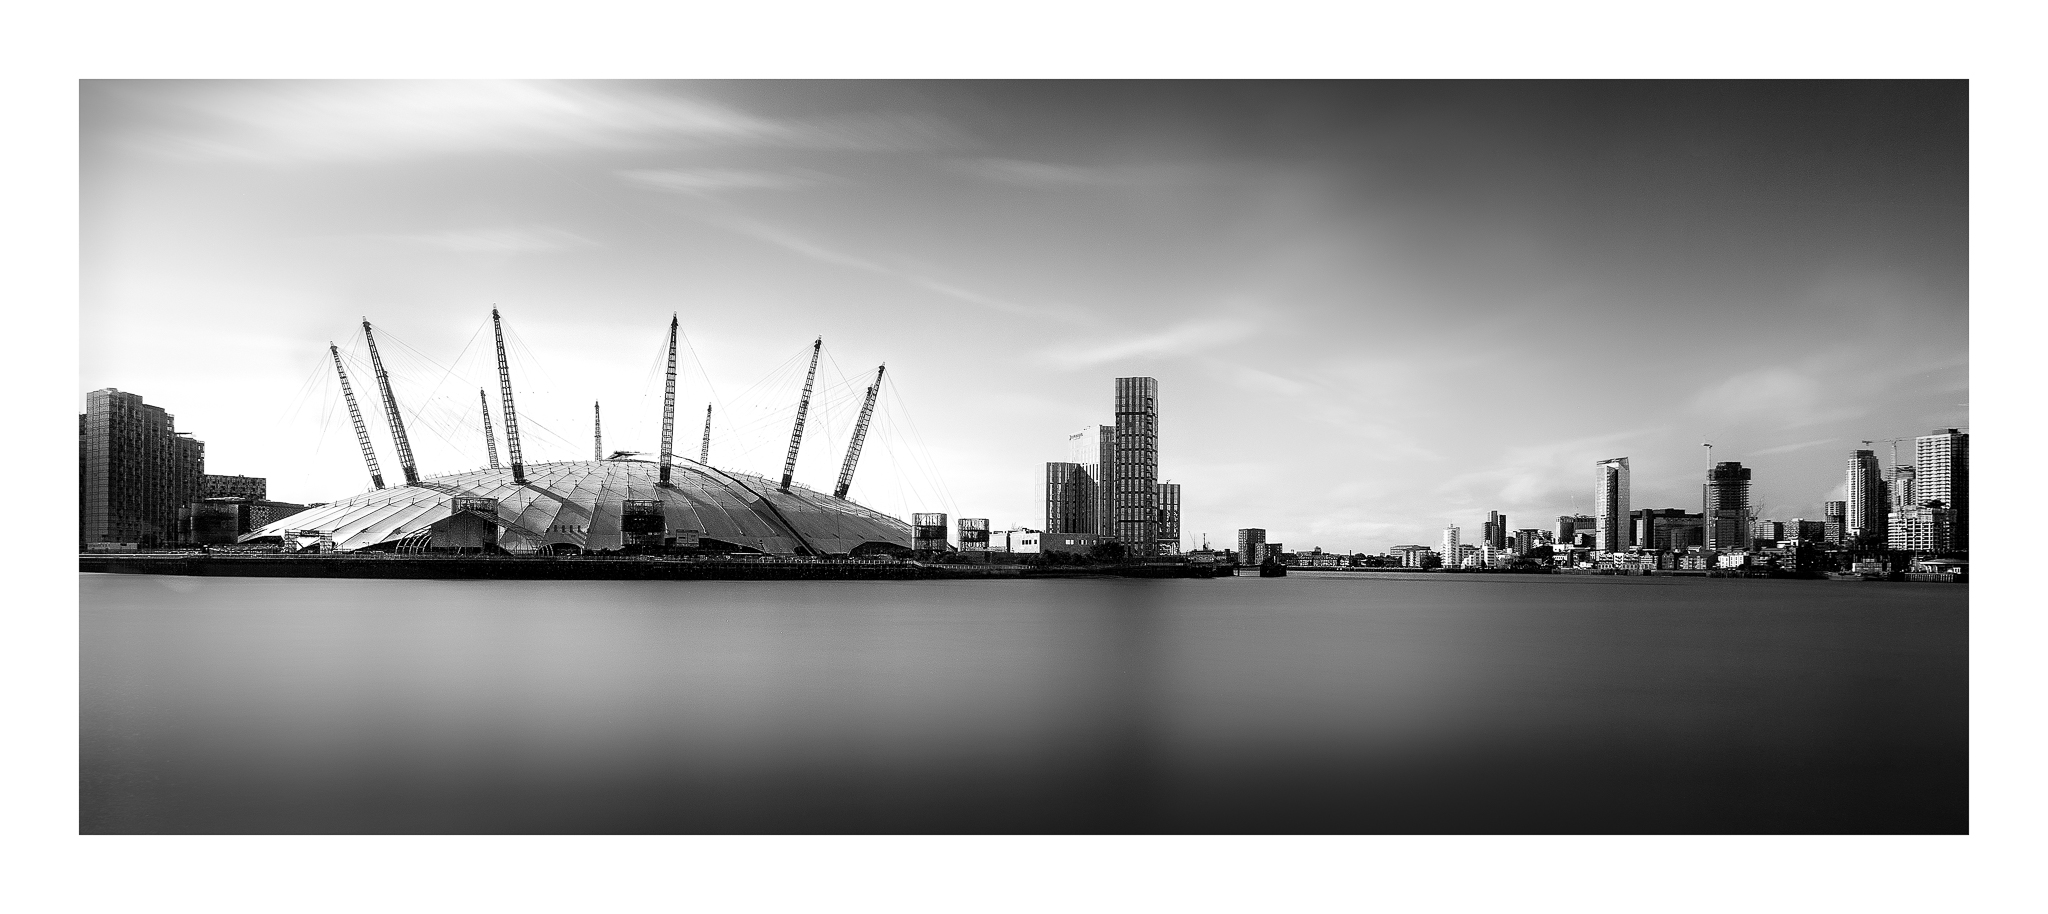 Millenium Dome, United Kingdom